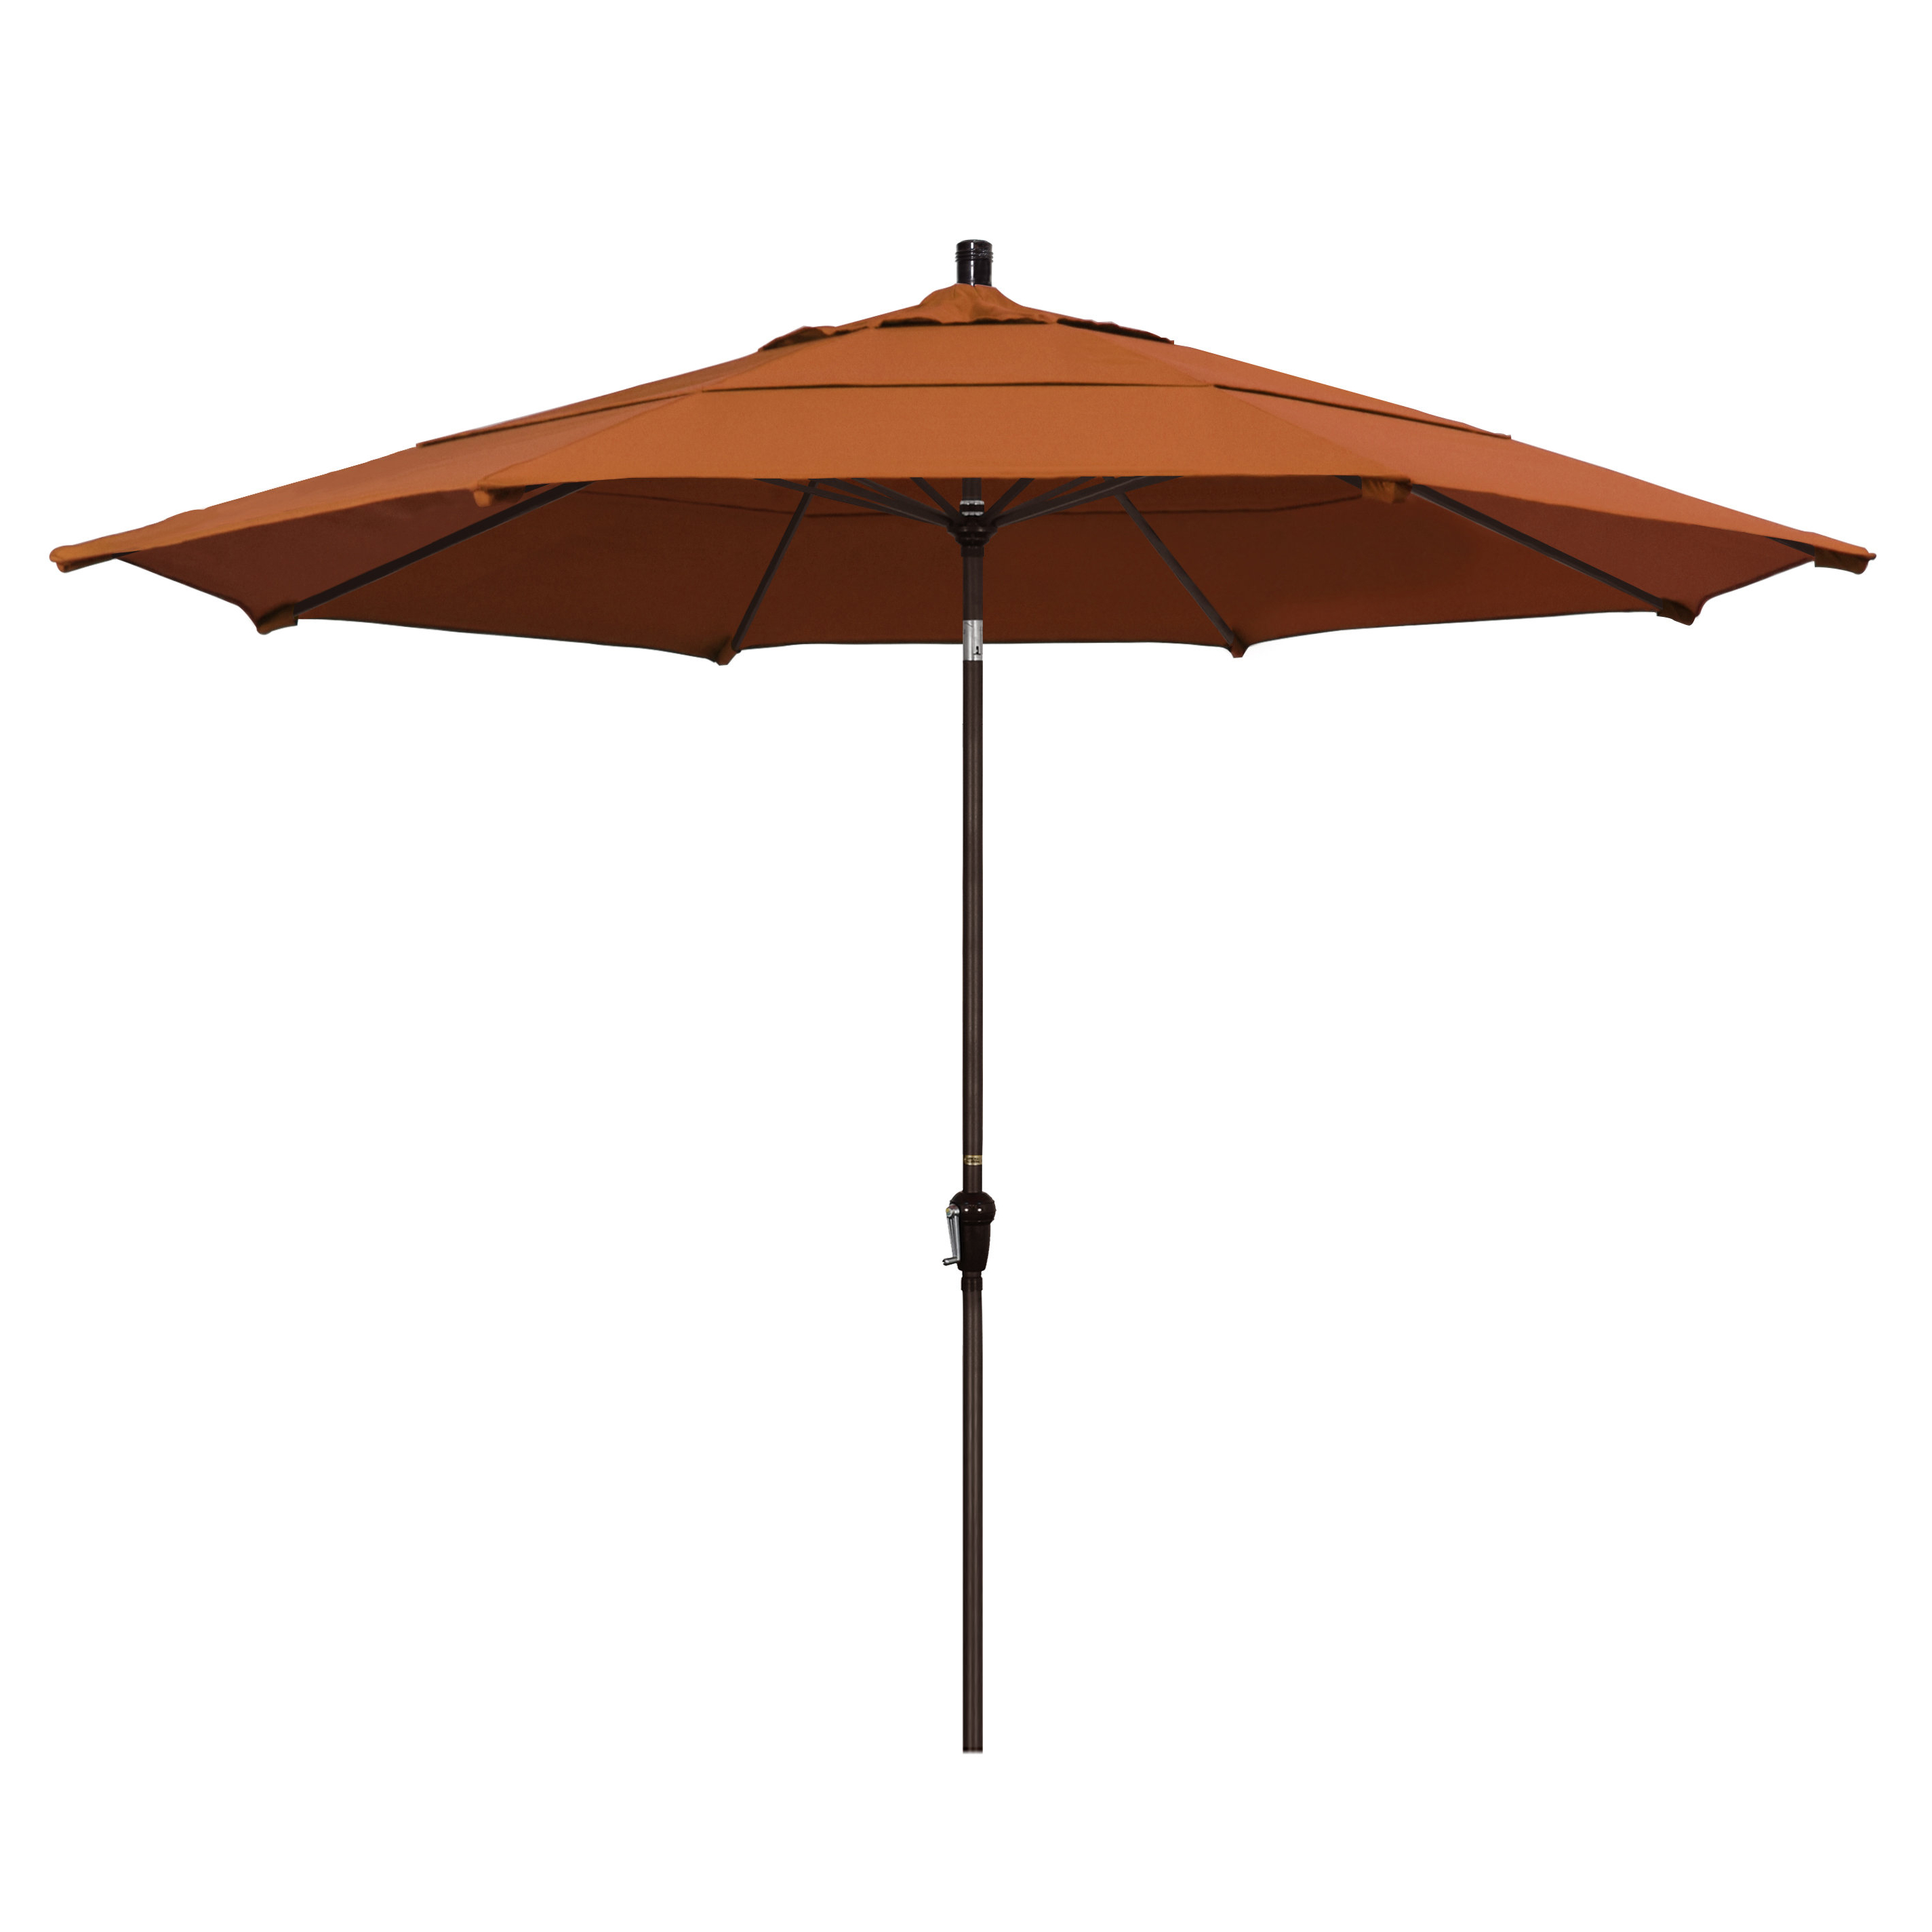 Most Up To Date Mullaney Market Sunbrella Umbrellas Pertaining To Mullaney 11' Market Sunbrella Umbrella (Gallery 5 of 20)